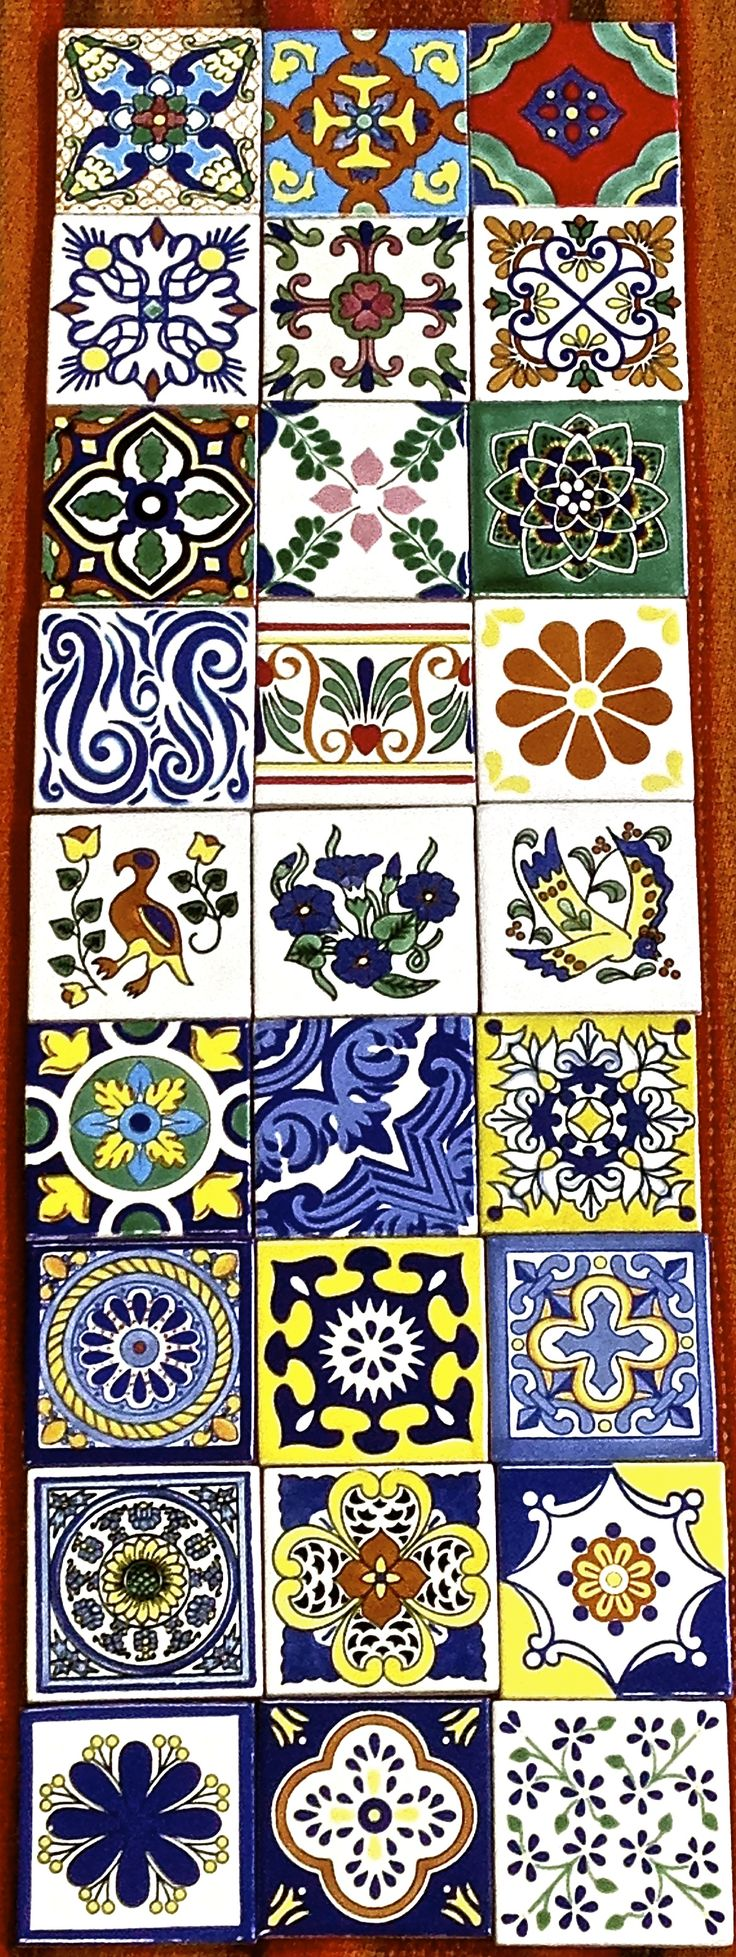 Here's a sampling of Especial (ceramic) Mexican tile, hand-painted and high temperature fired clay for durability and water resistance. Most colors and patterns also available in porcelain.